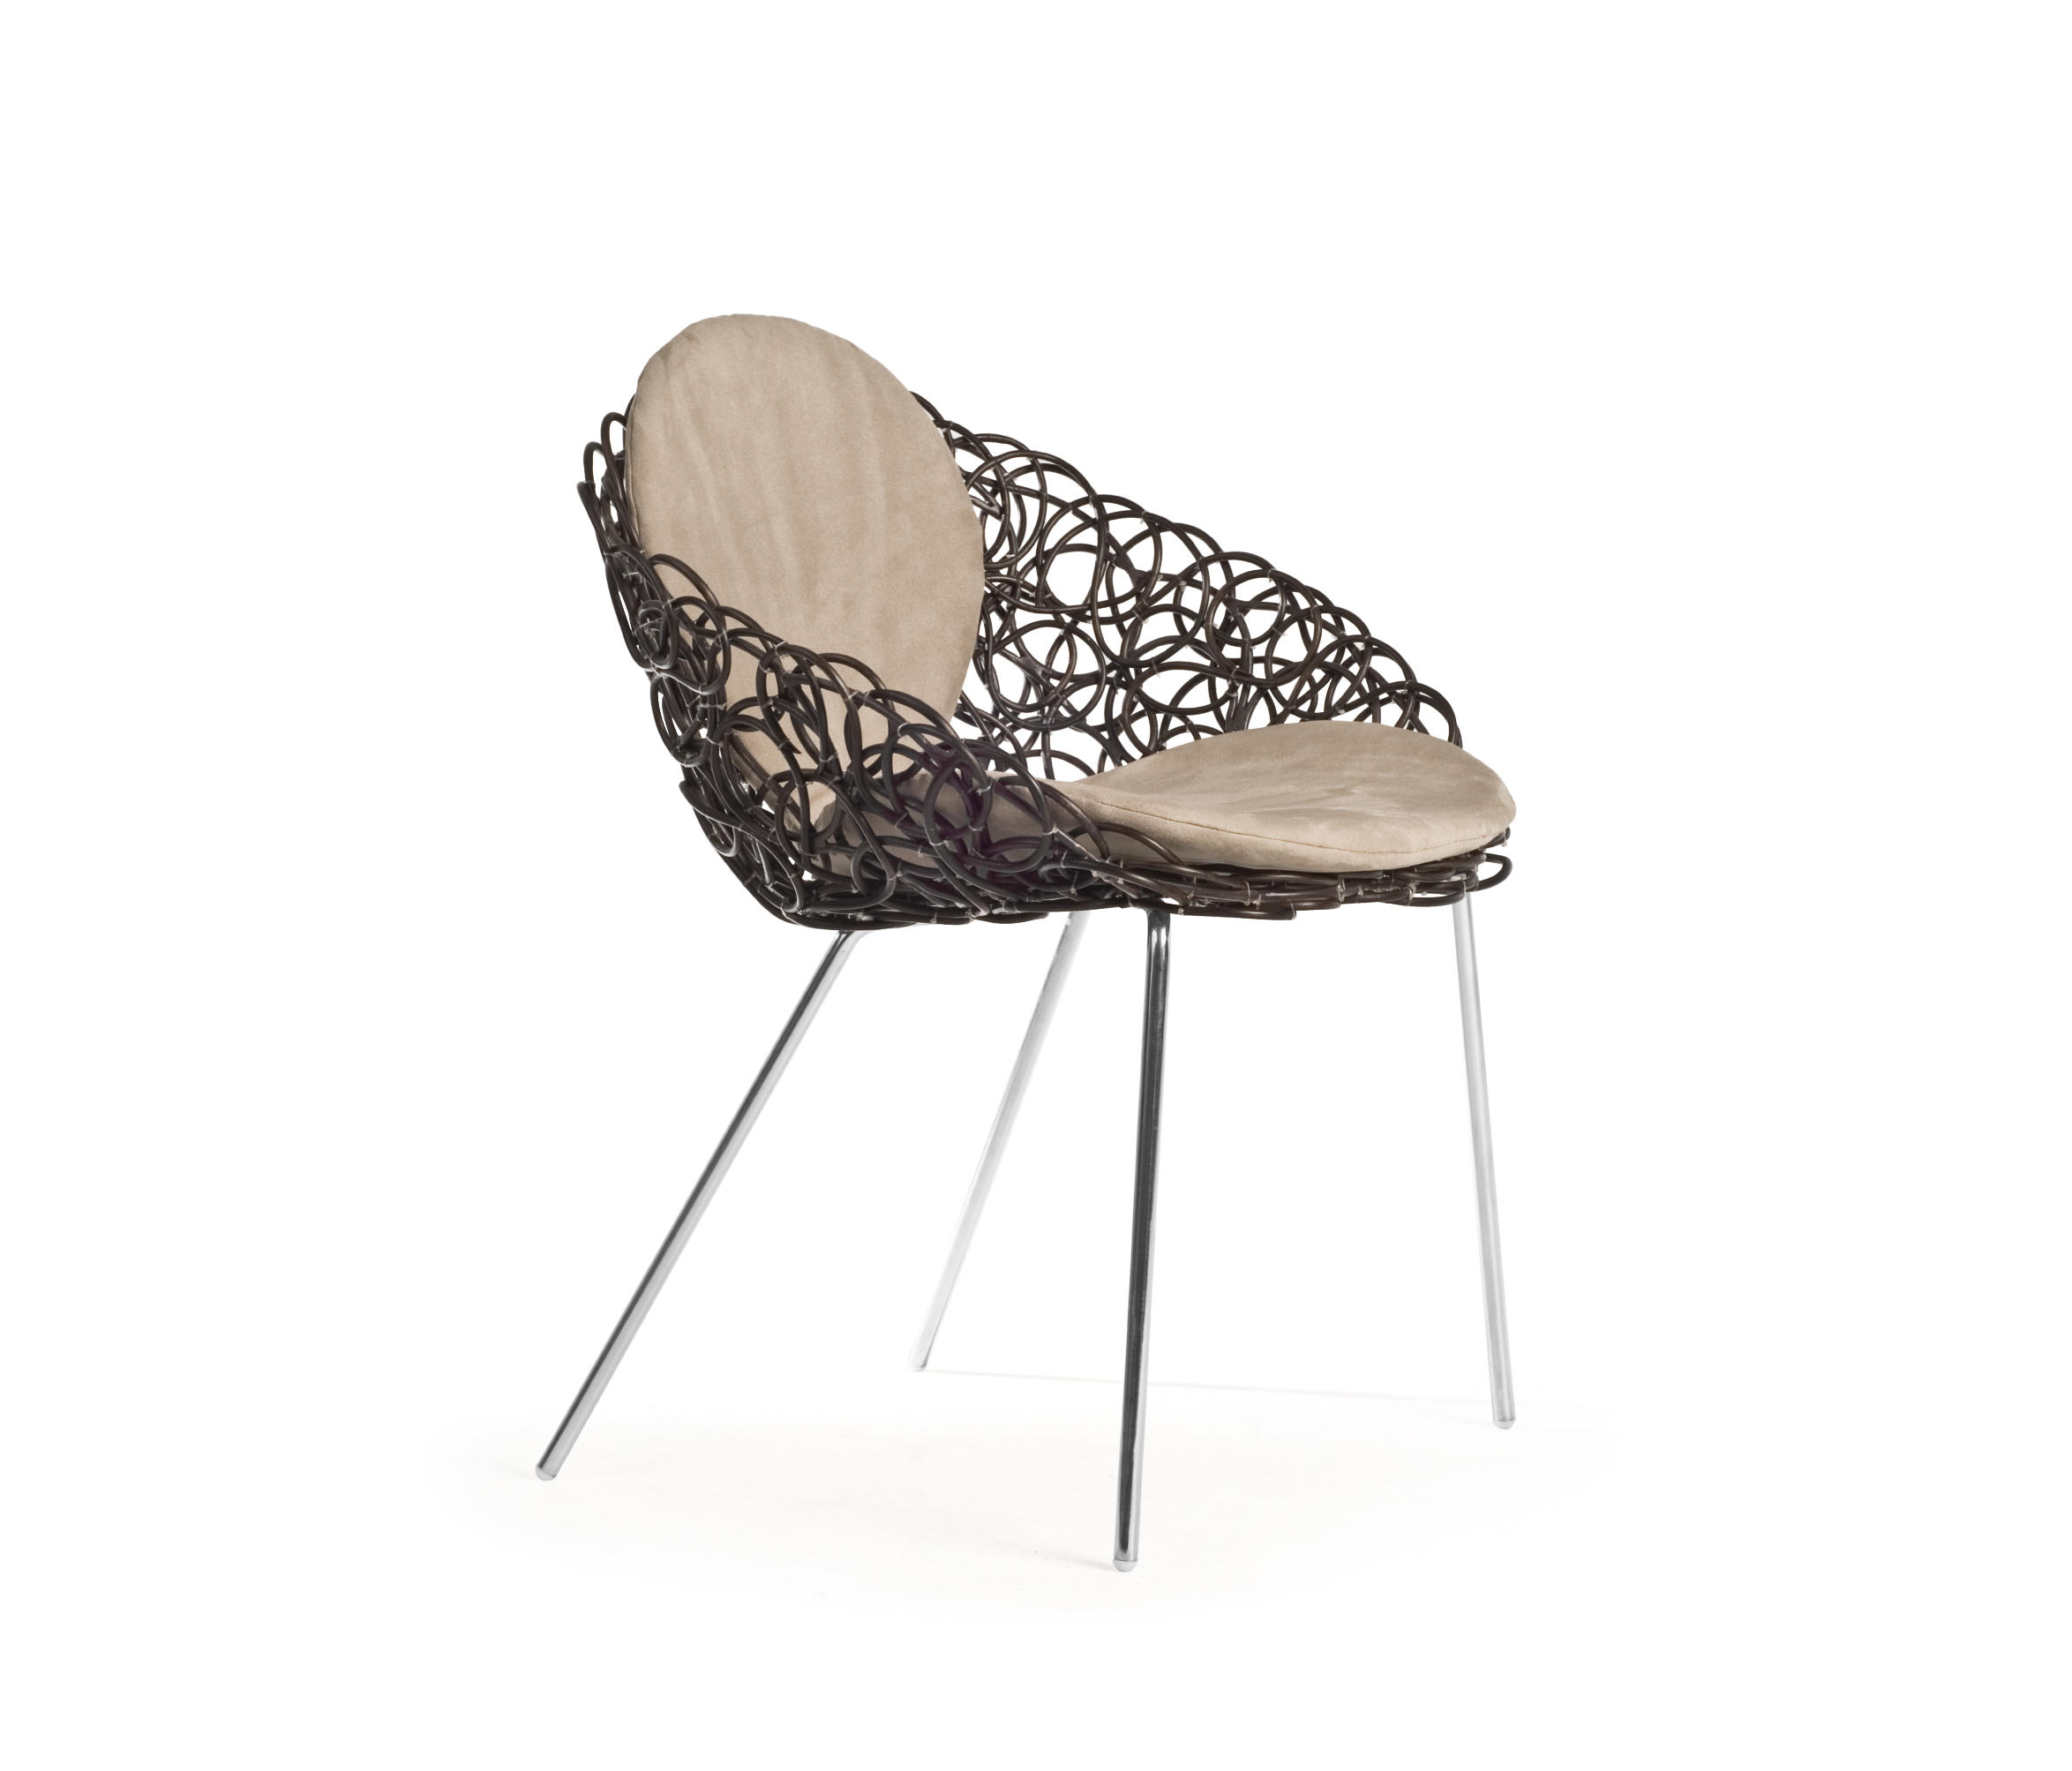 NOODLE ARMCHAIR Restaurant chairs from Kenneth Cobonpue